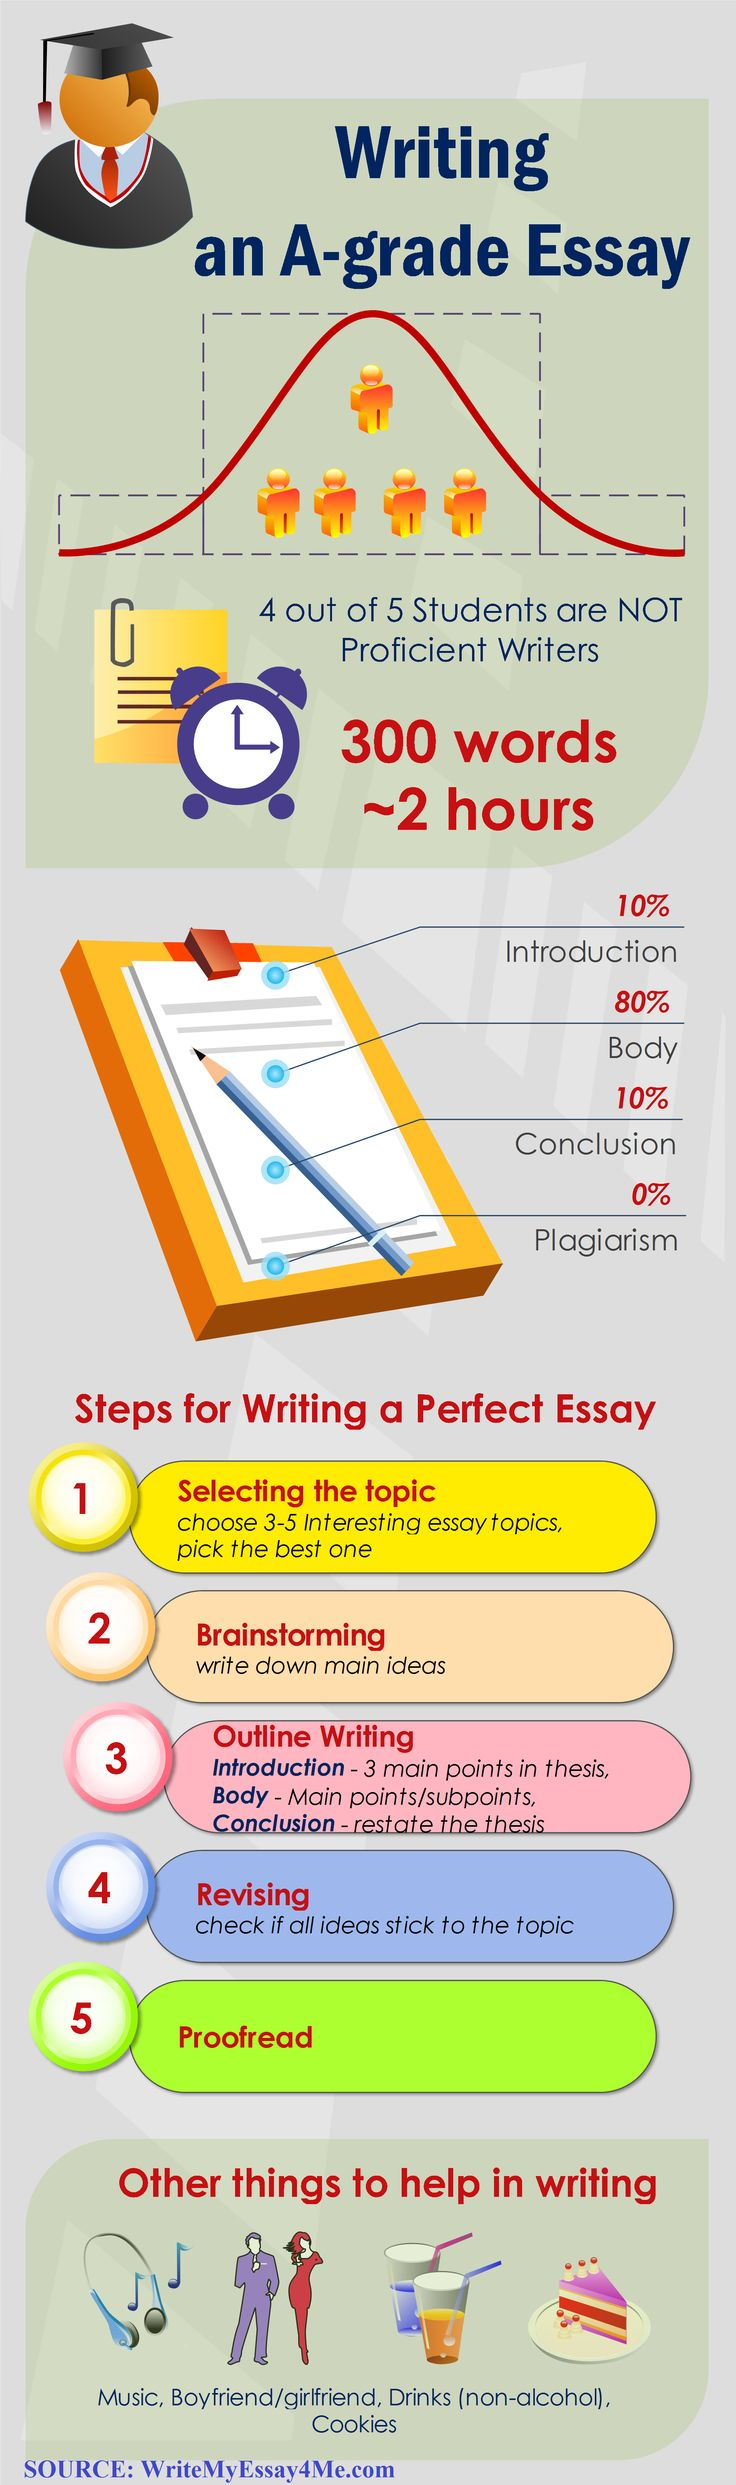 Scholarship essay writers